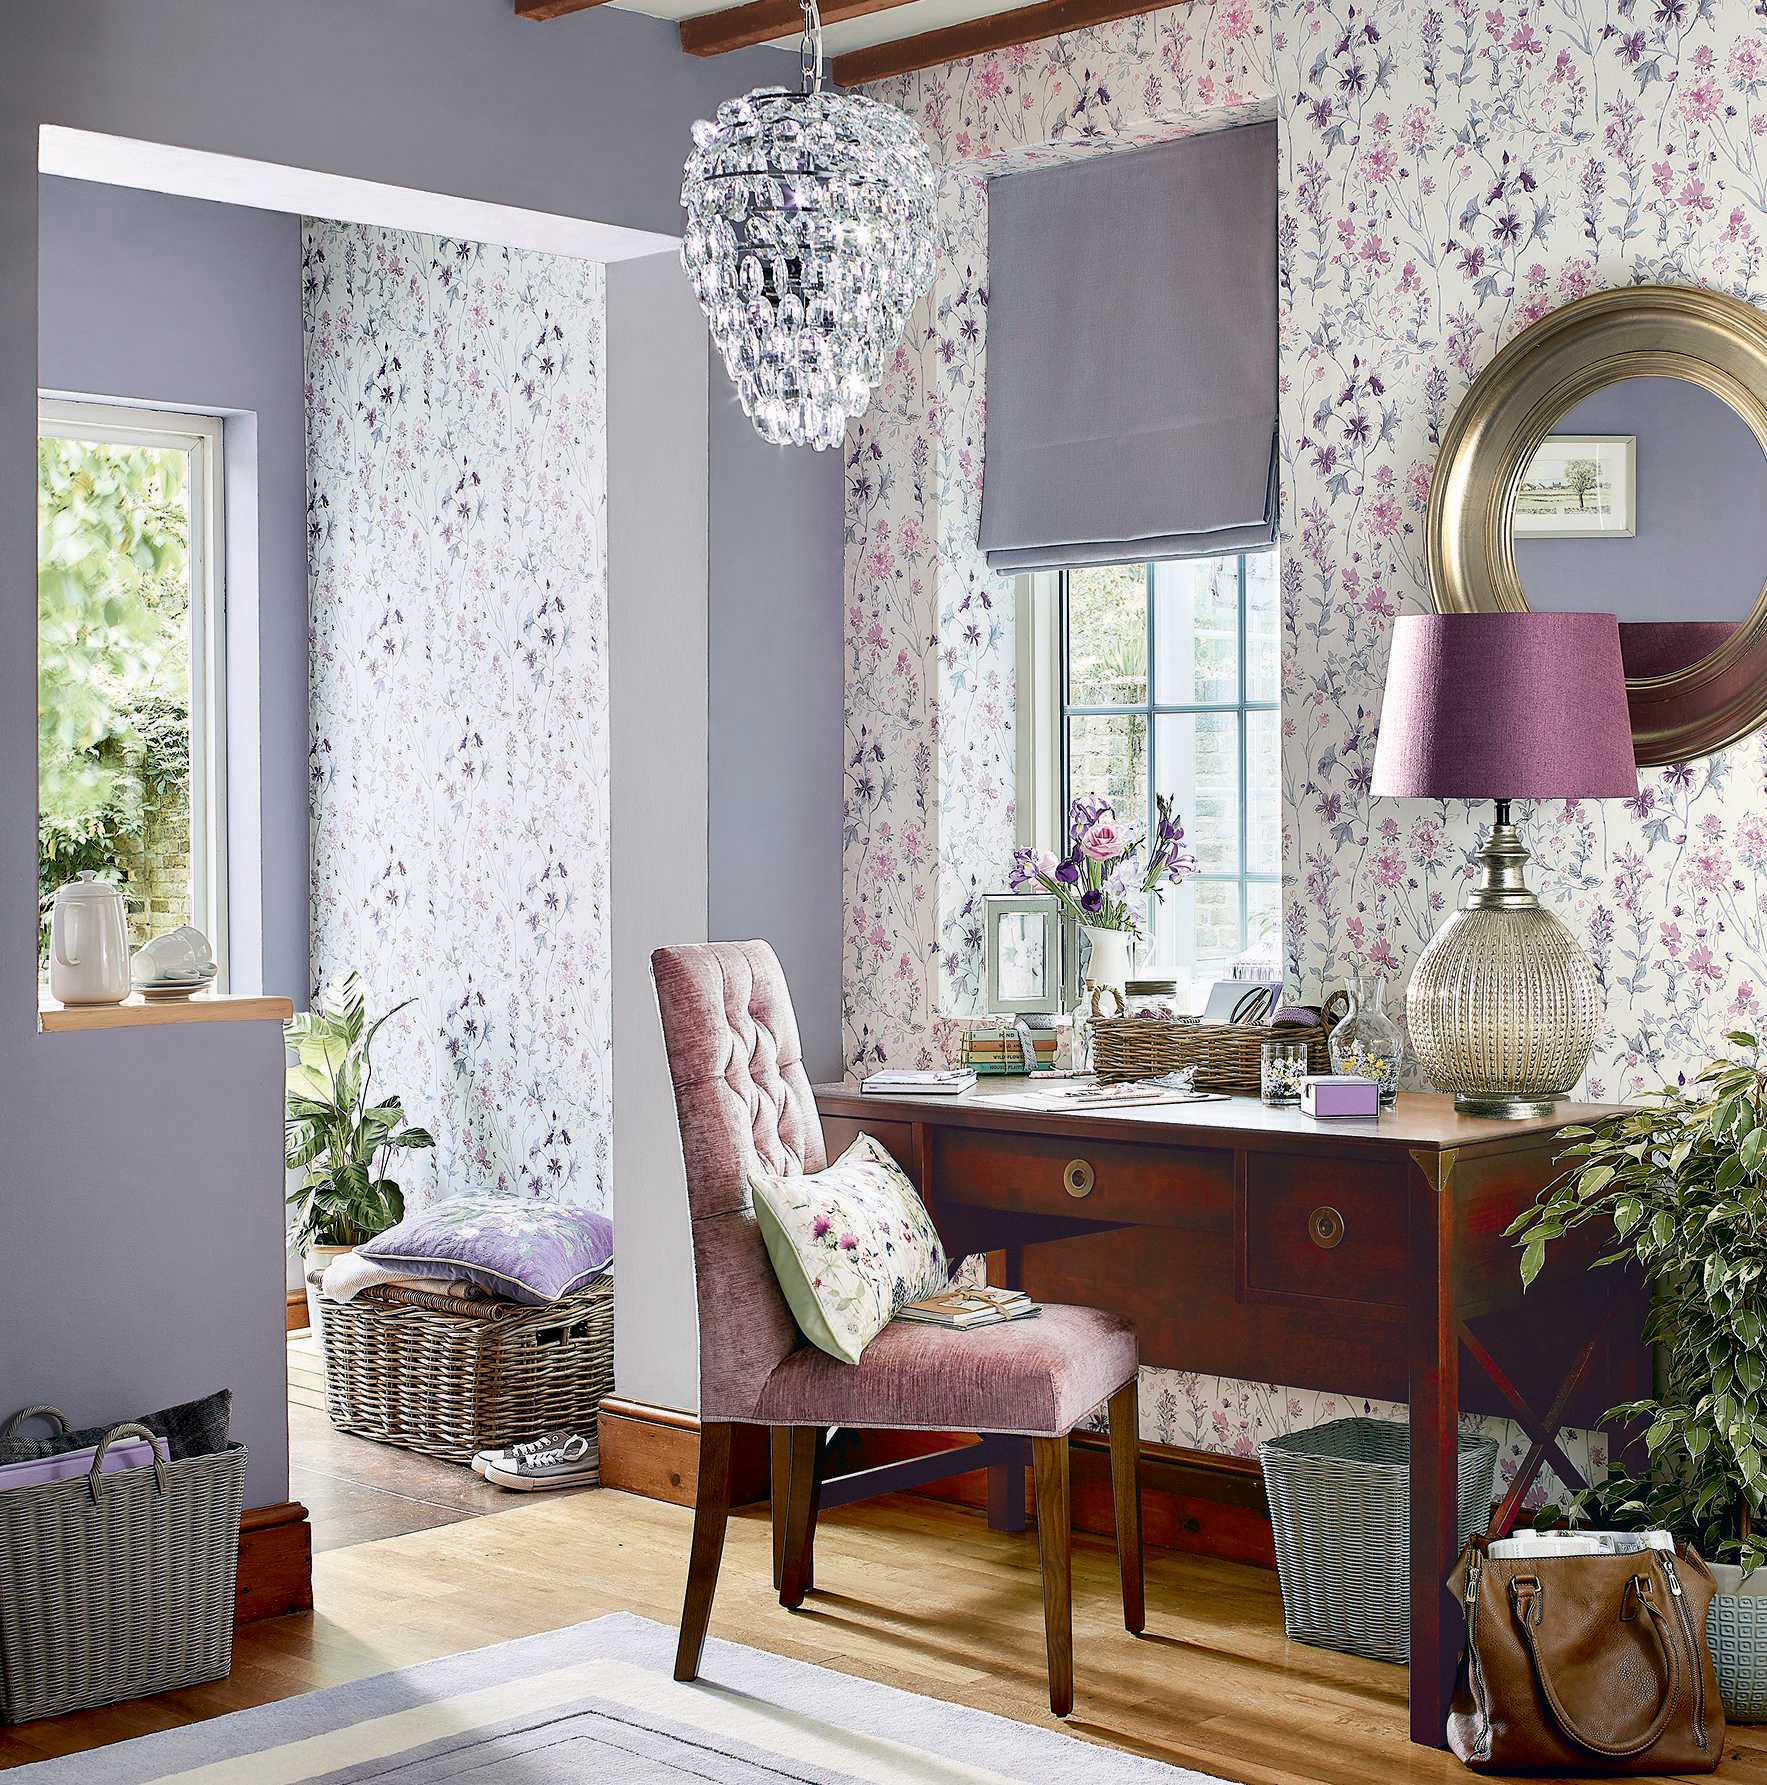 Fun ways to use pink and purple to decorate your interior